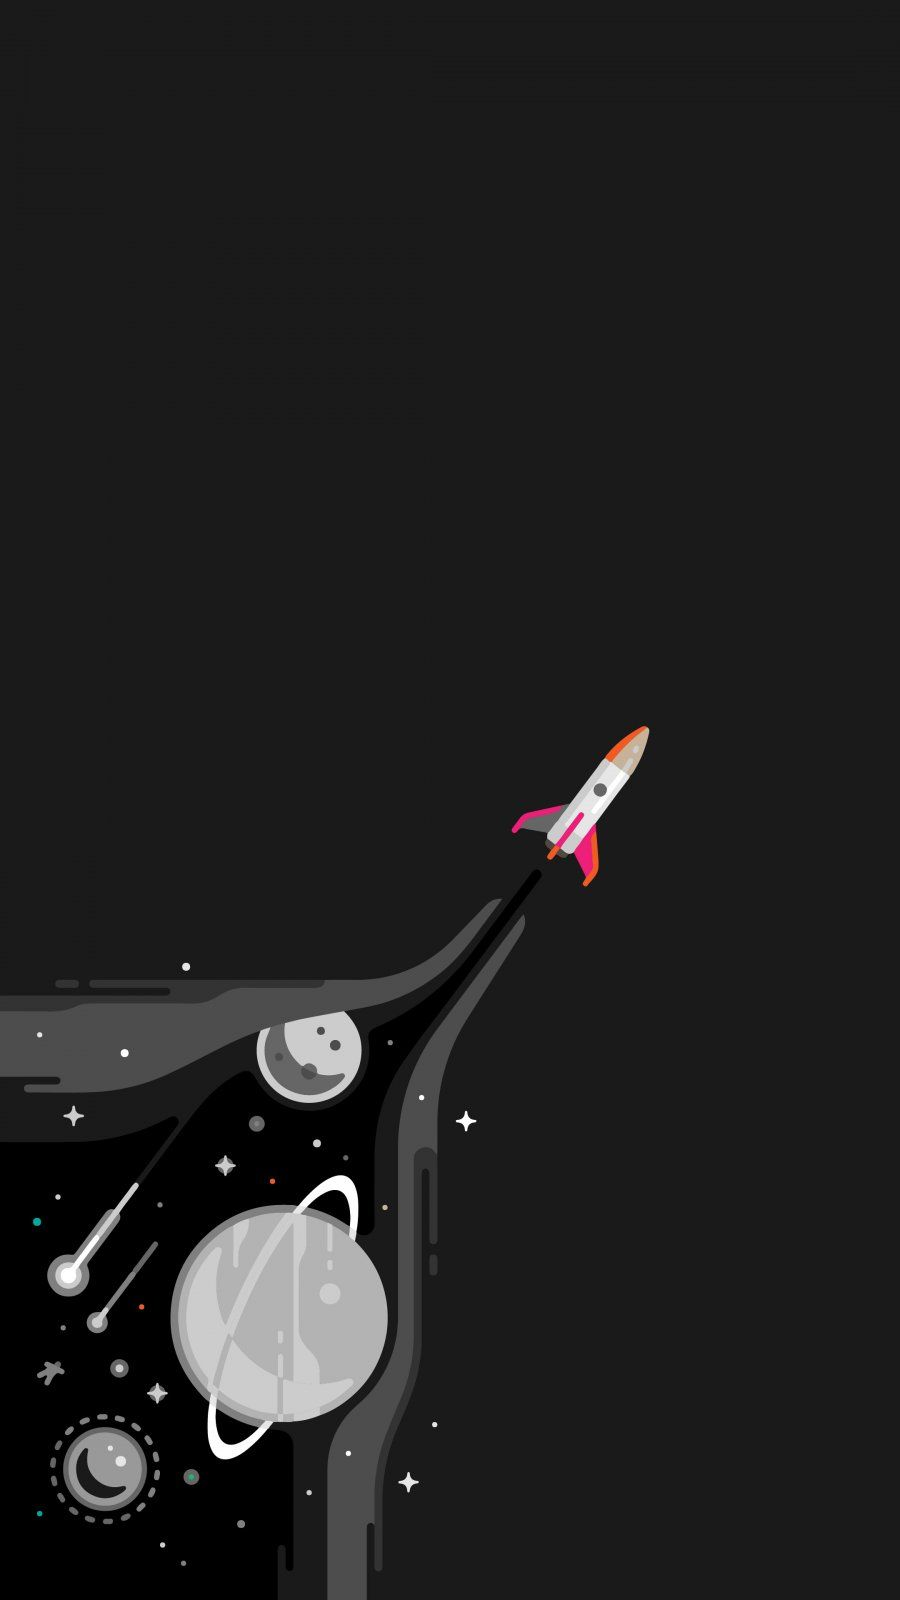 Space Rocket - iPhone Wallpapers